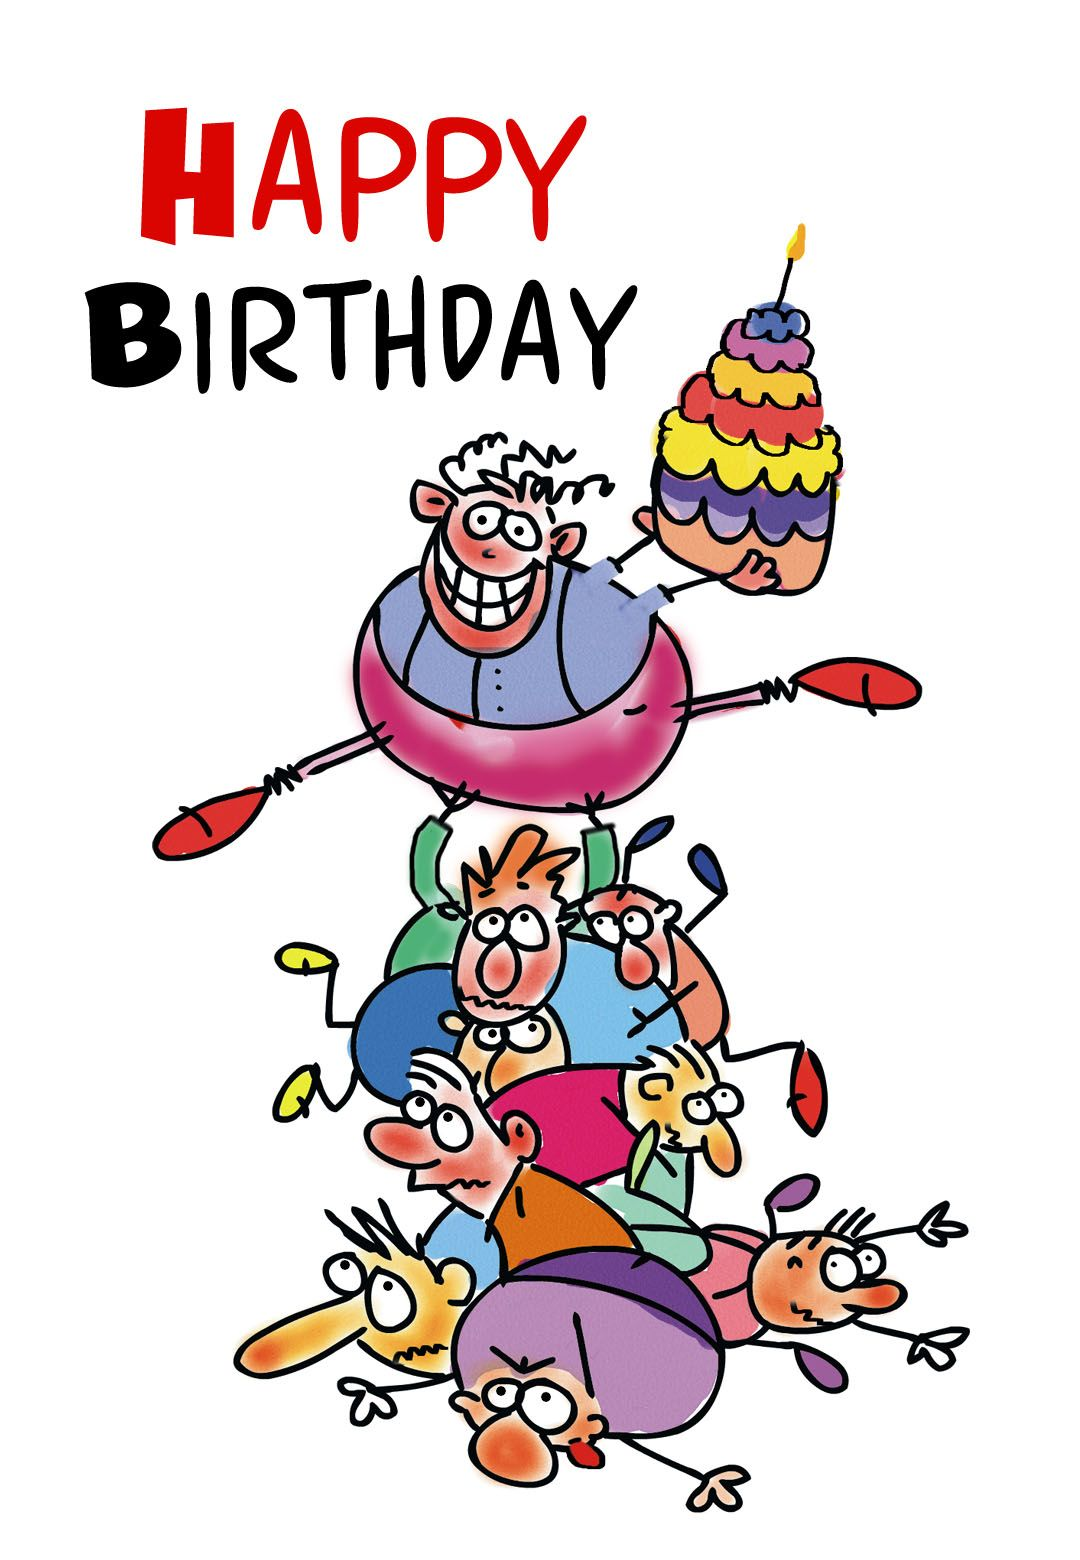 Funny Birthday Free Birthday Card Greetings Island Funny Printable Birthday Cards Funny Birthday Greeting Cards Funny Birthday Cards